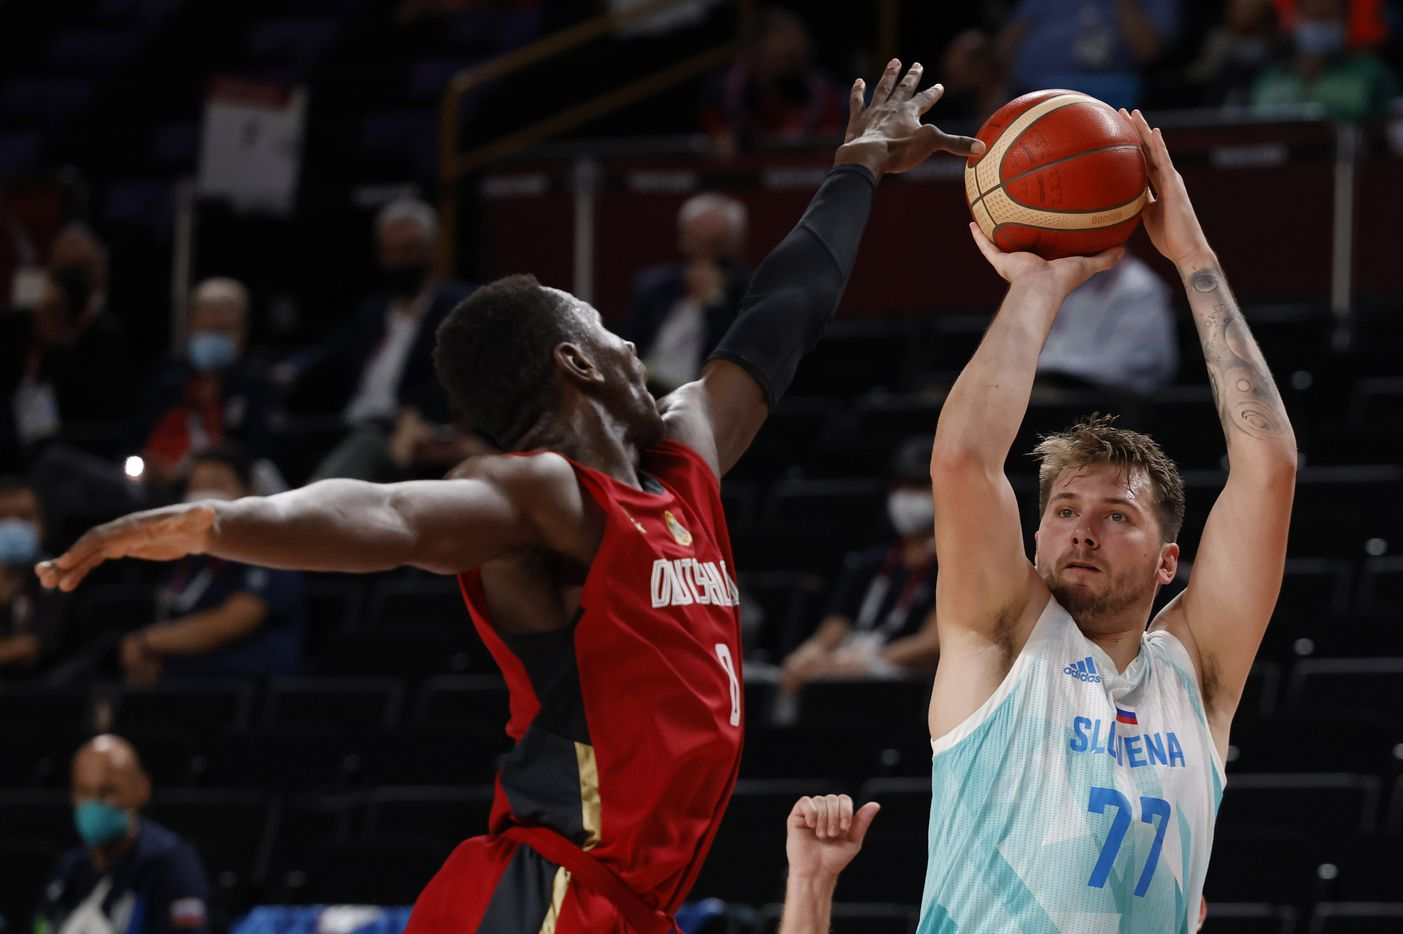 Slovenia's Luka Doncic (77) shoots over Germany's Isaac Bonga (0) during the second half of play of a quarter final basketball game at the postponed 2020 Tokyo Olympics at Saitama Super Arena, on Tuesday, August 3, 2021, in Saitama, Japan. (Vernon Bryant/The Dallas Morning News)